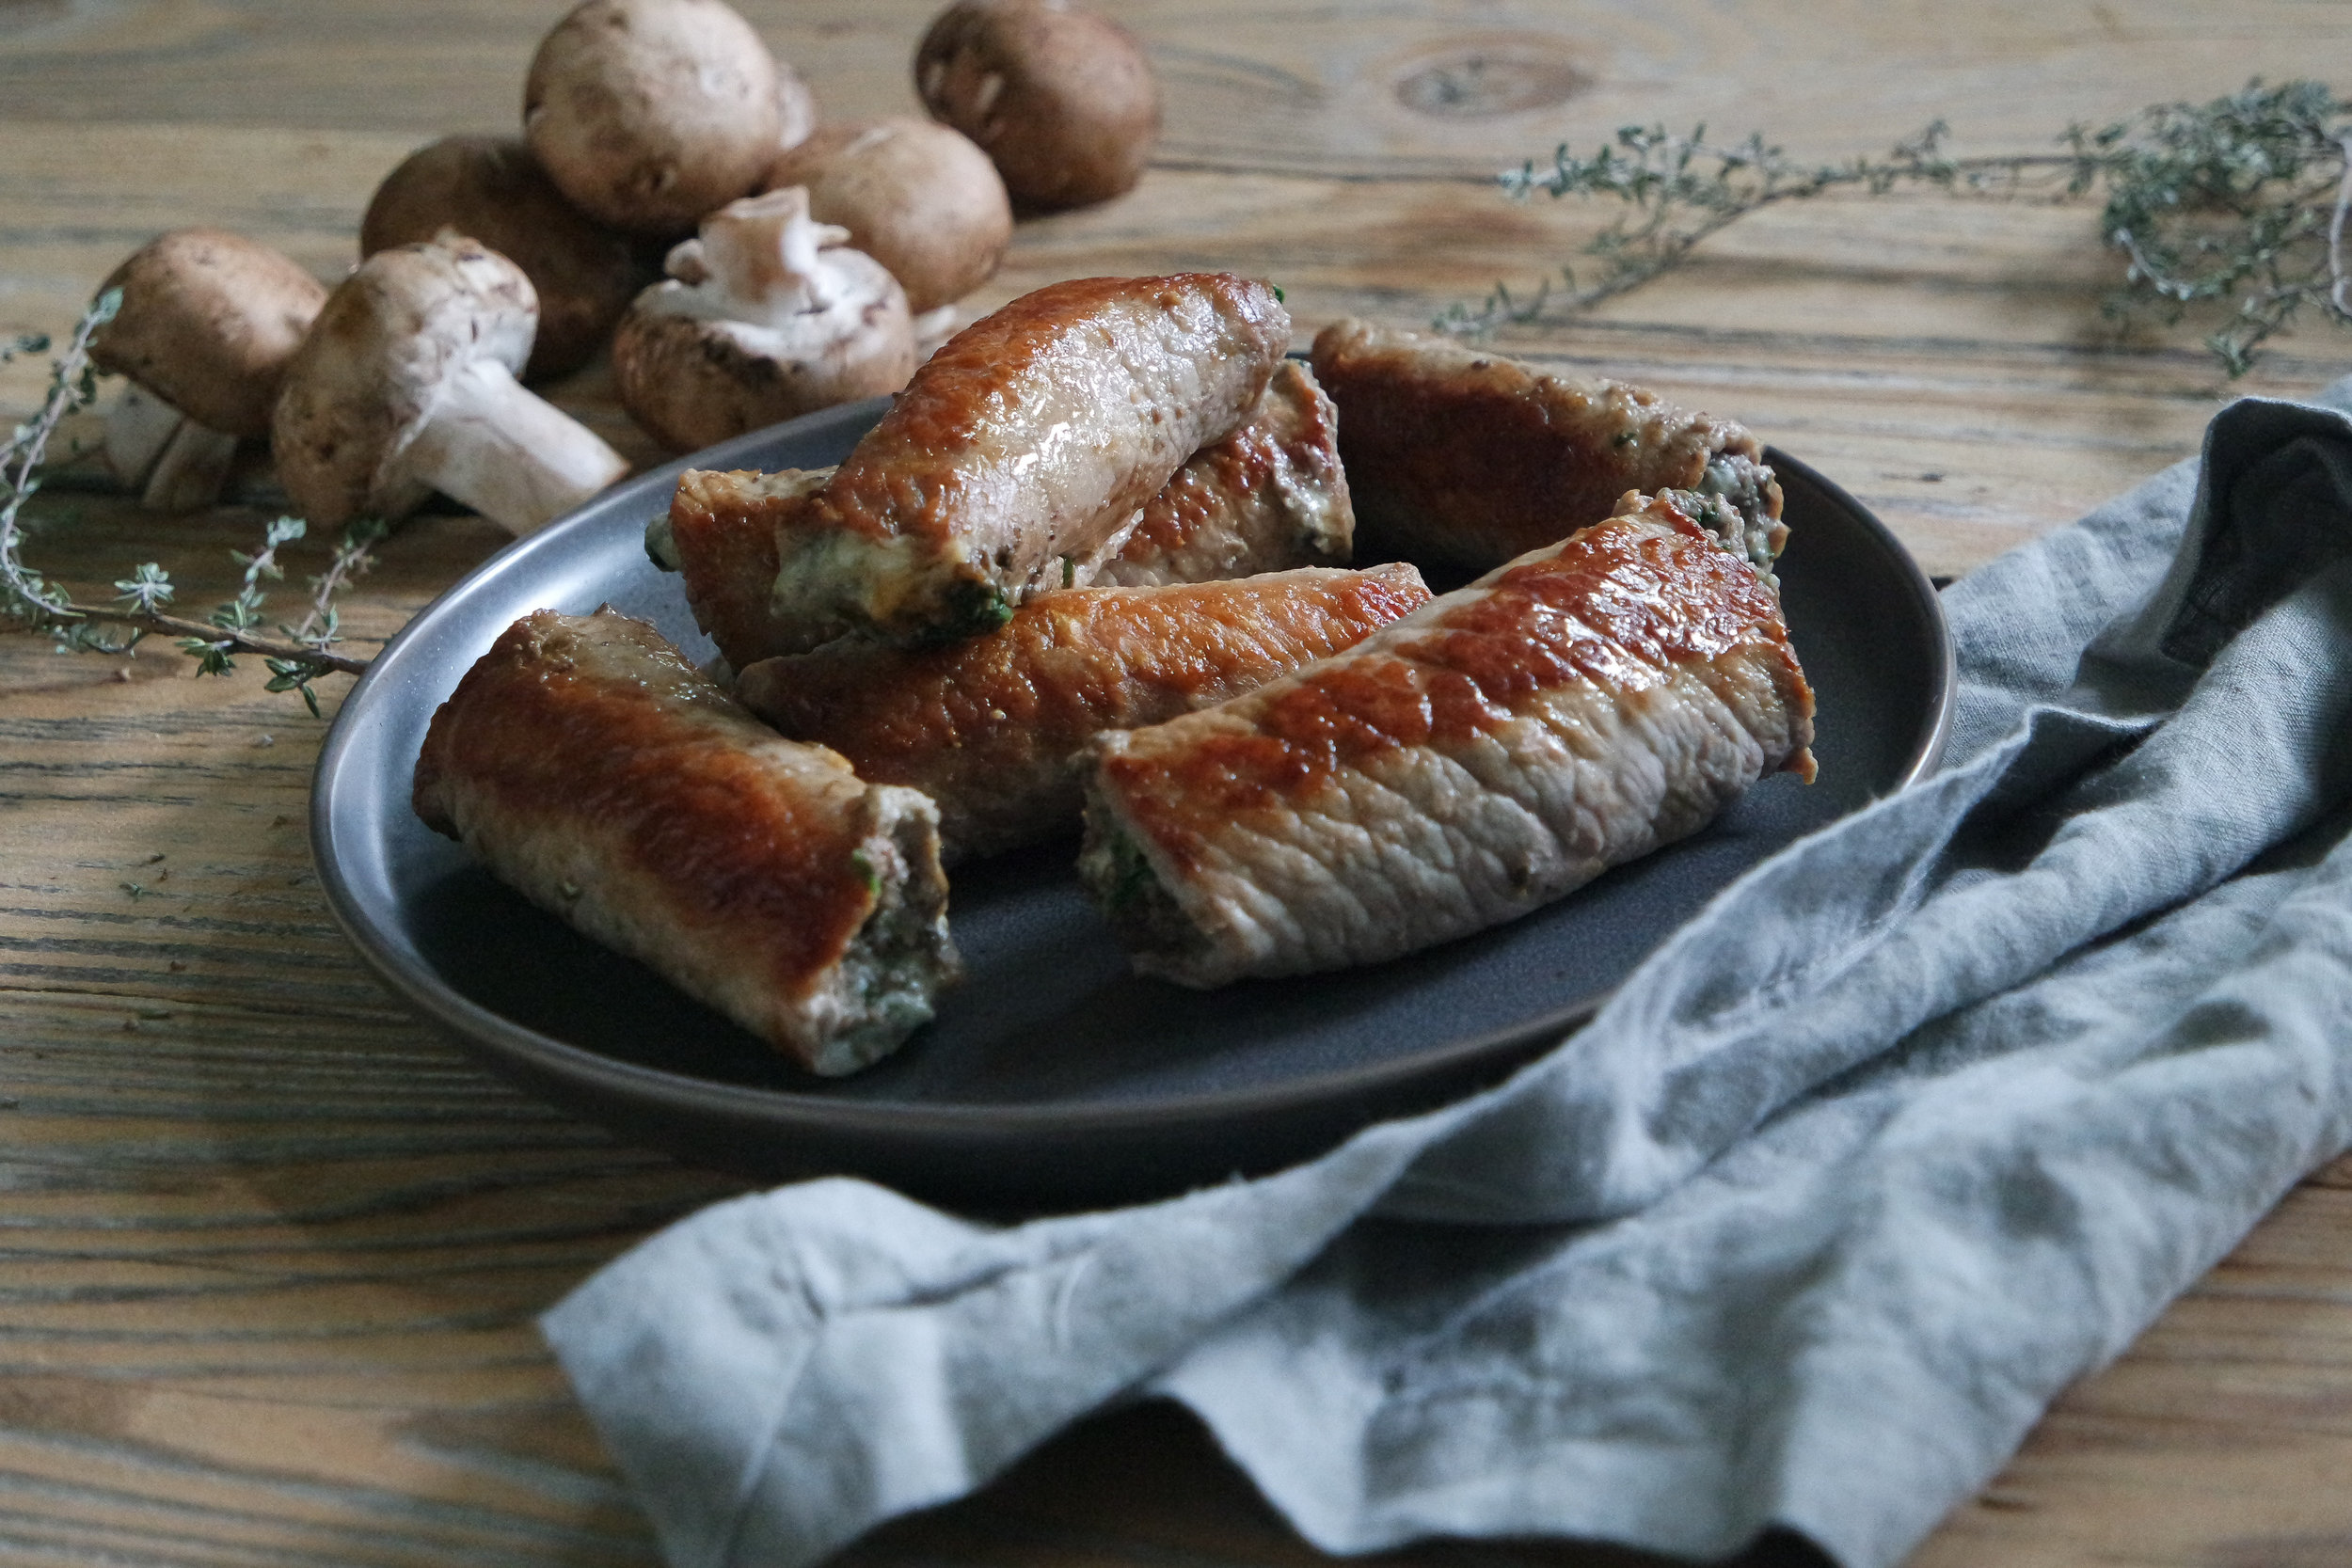 Stuffed Veal Wraps with Mushrooms and Blue Cheese